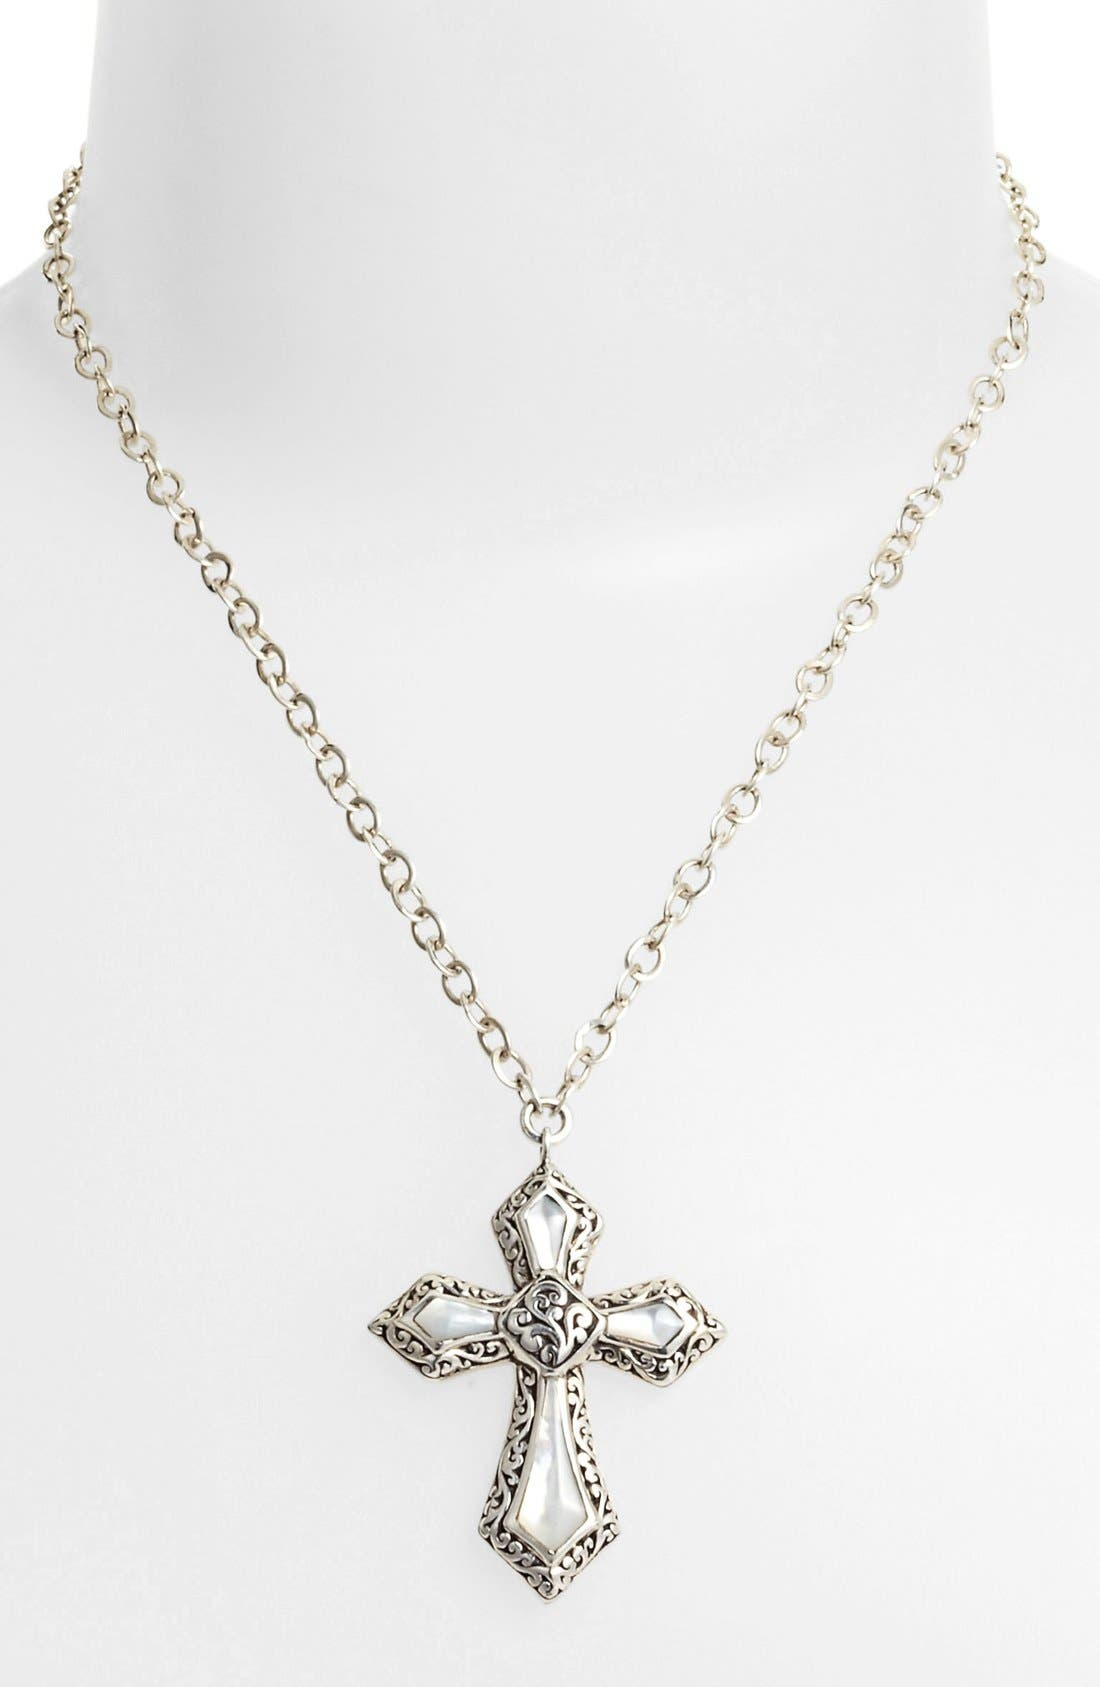 Main Image - Lois Hill Cross Pendant Necklace